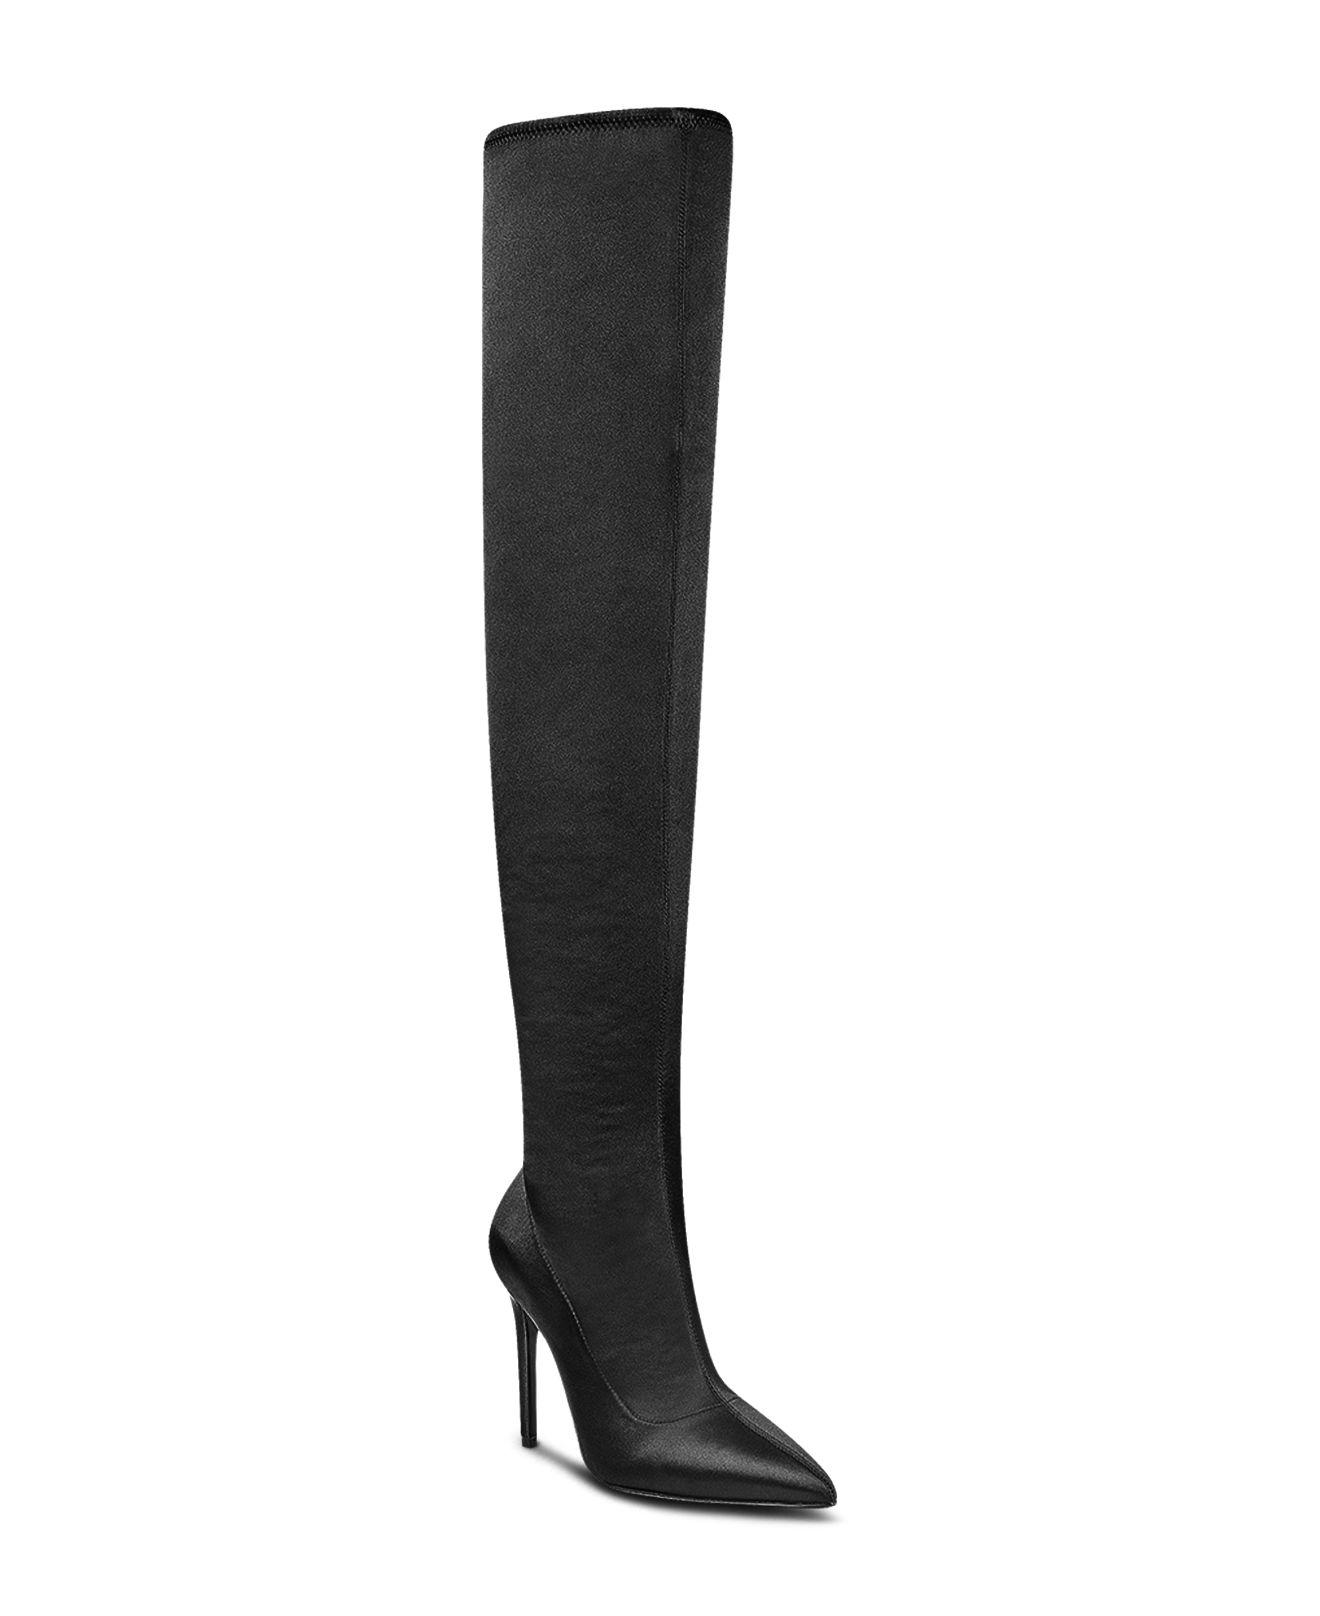 61705204751 Lyst - Kendall + Kylie Women s Anabel Satin Over-the-knee Boots in Black